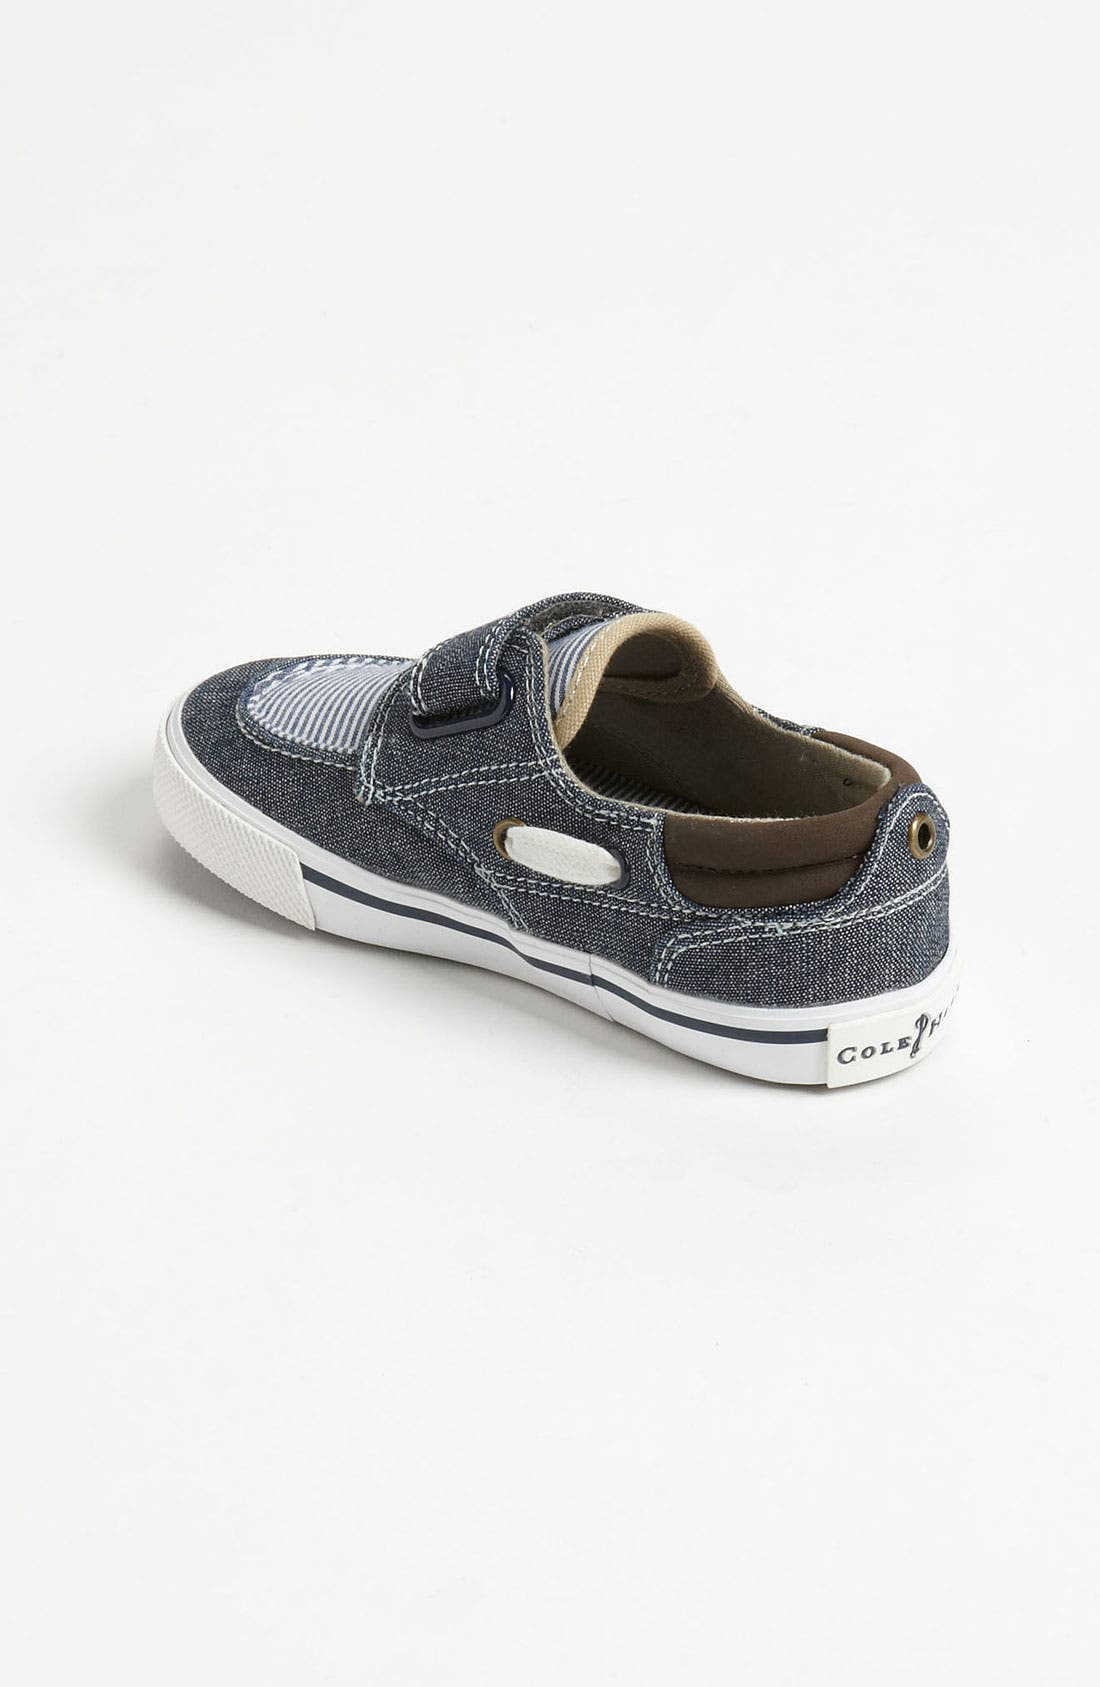 Alternate Image 2  - Cole Haan 'Air Cory' Boat Shoe (Walker & Toddler)